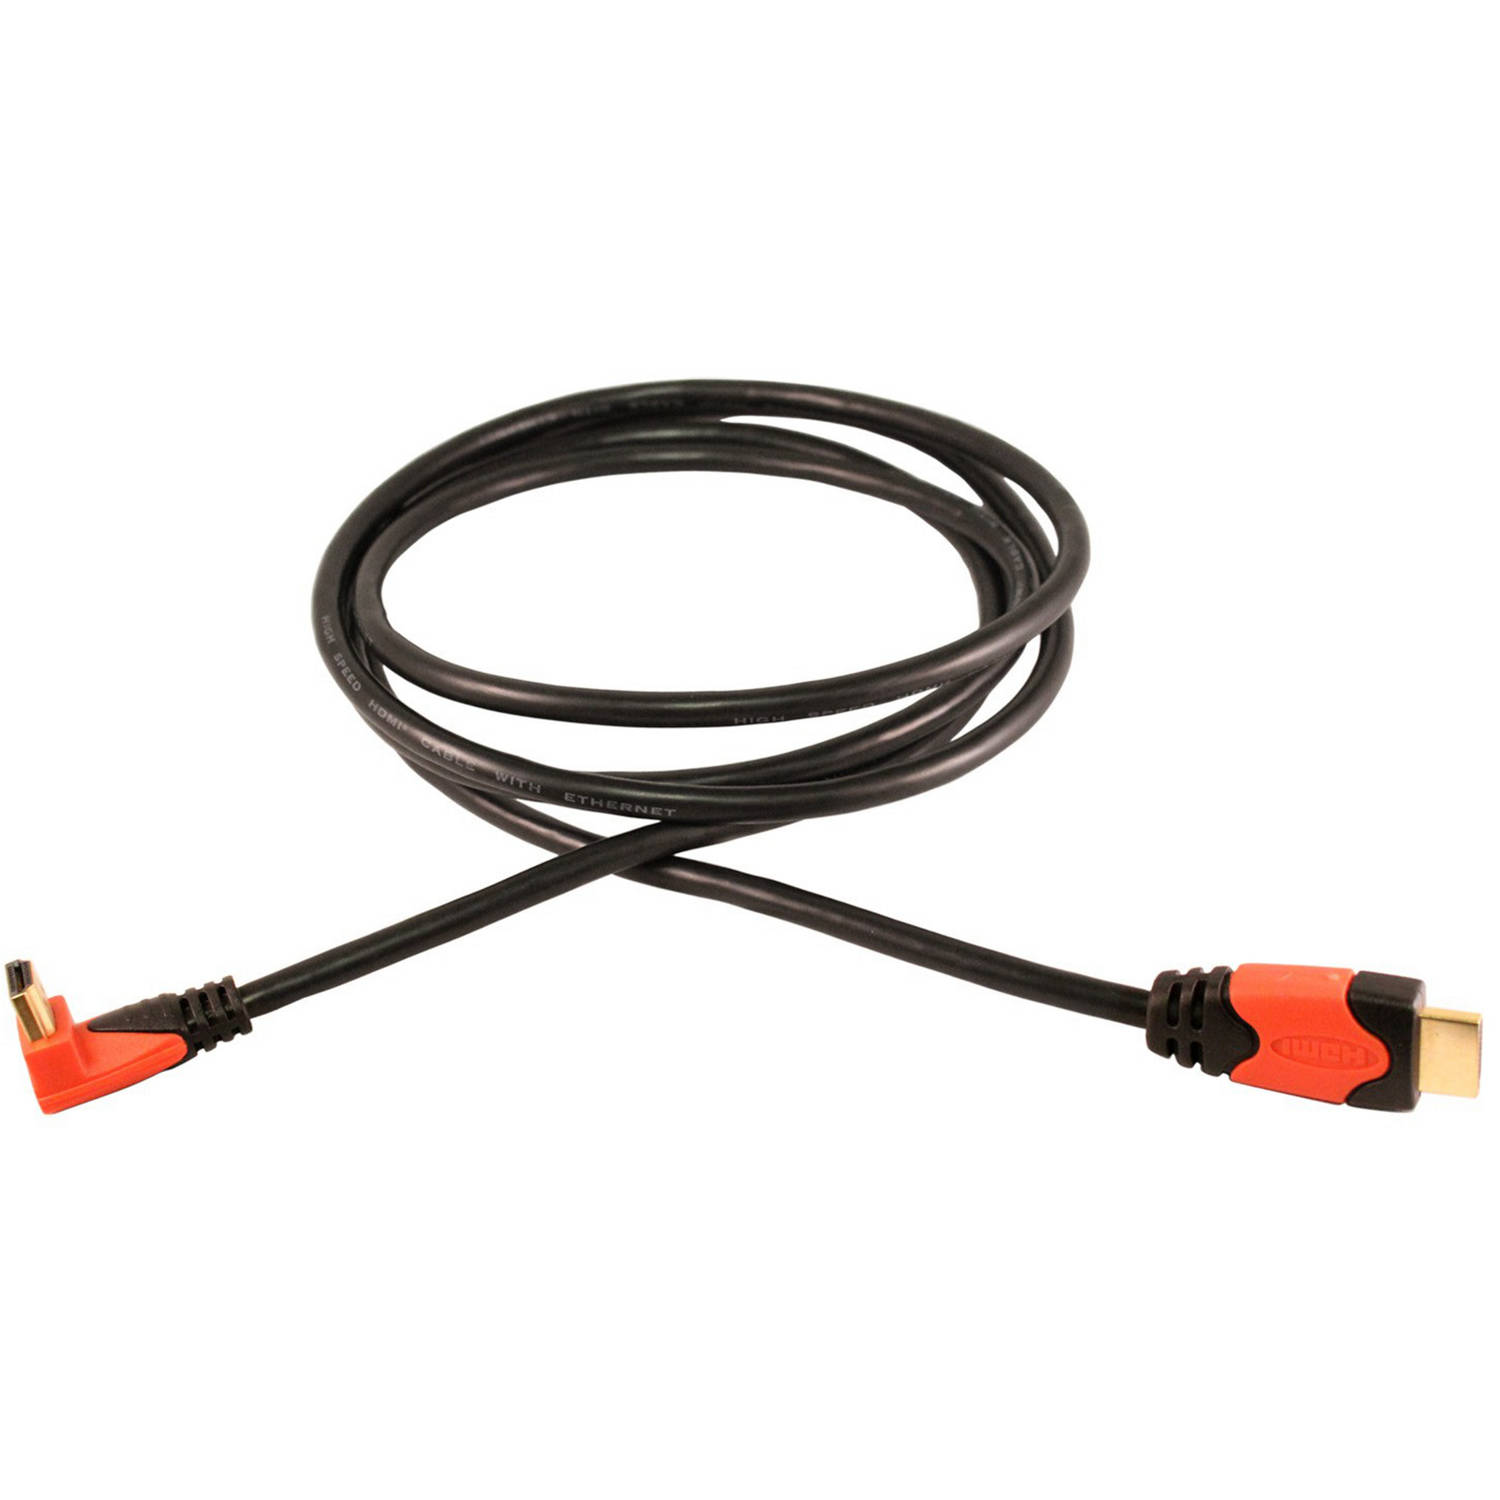 Electronic Master 12' HDMI Male to Male Cable, EMHD1312